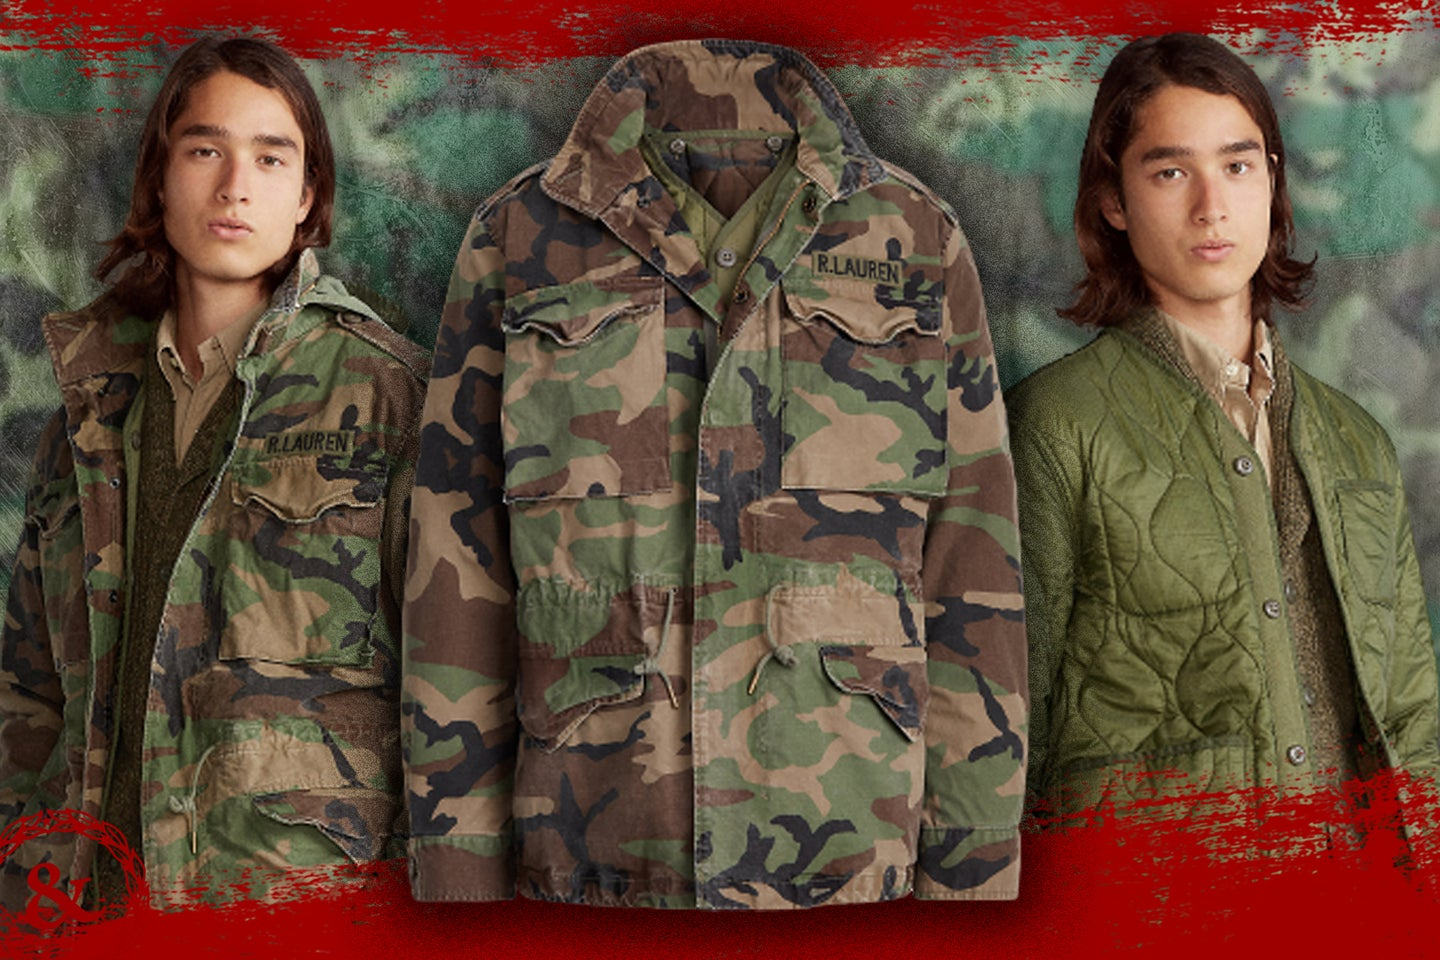 Ralph Lauren is looking for a few rich idiots to drop nearly $500 on this jacket worth about $20